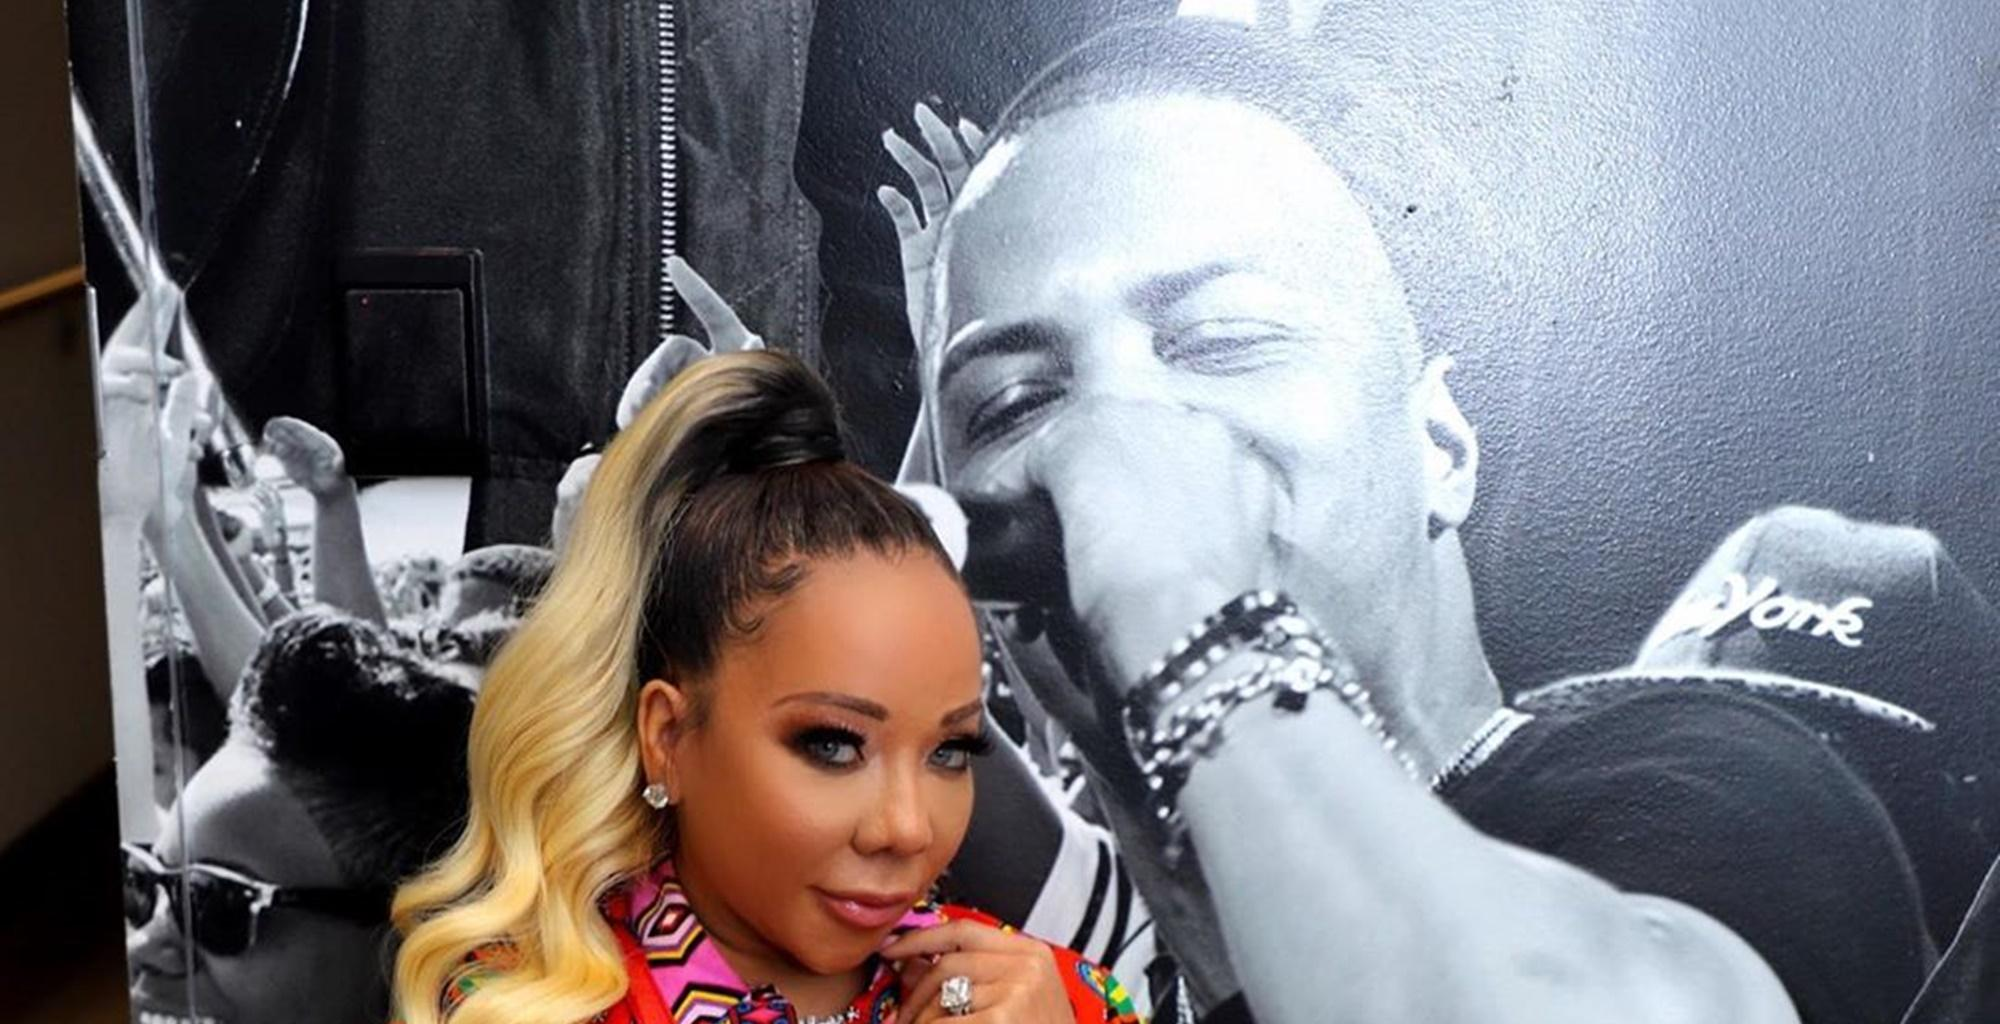 Tiny Harris And T.I.'s Video Of Their Show Have Fans Discussing Parenting Ways